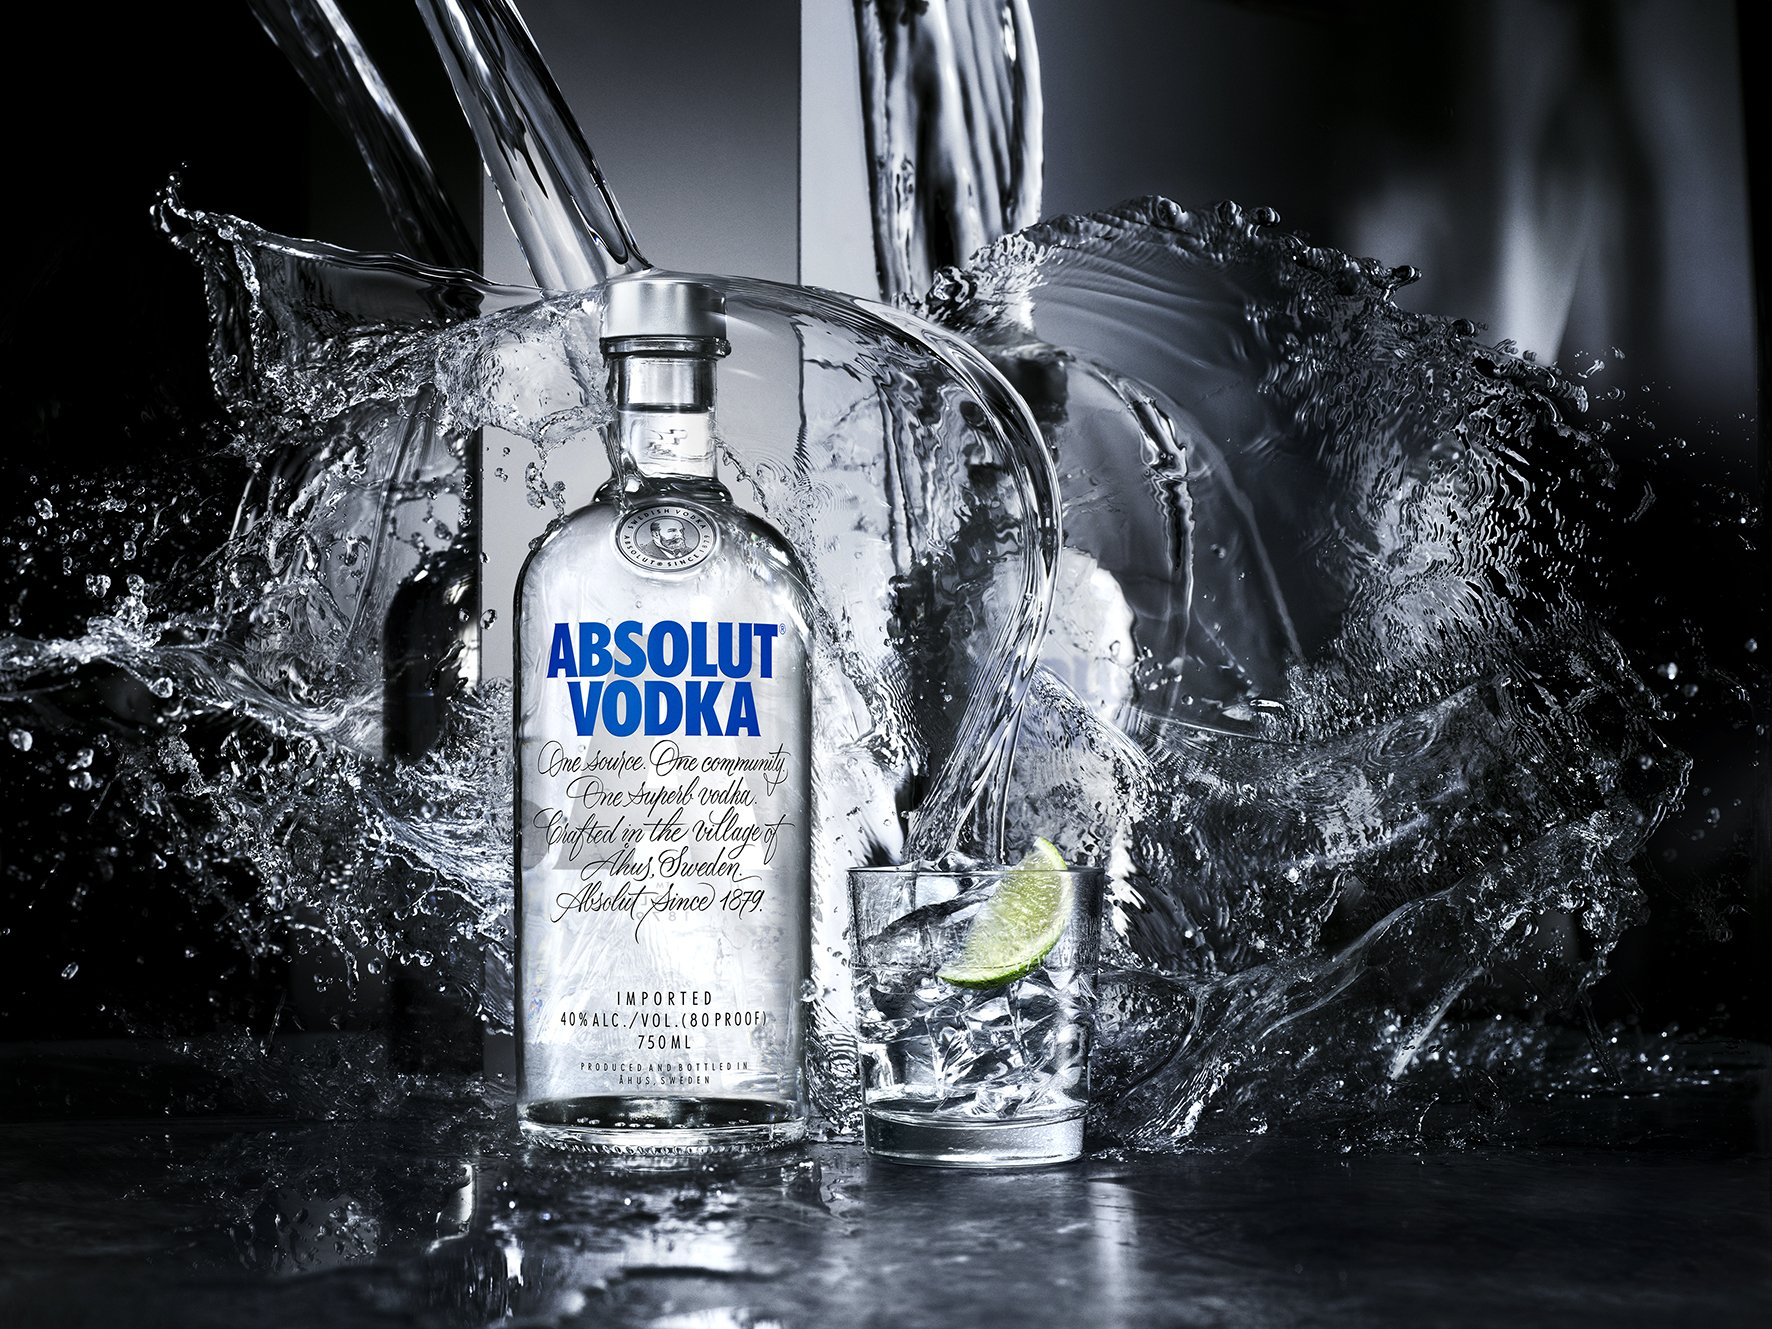 Absolut-Five-Vodka-Set–5er-Pack-Absolut-Vodka-Mix-mit-Absolut-Vodka-Original-Absolut-Kurant-Absolut-Citron-Absolut-Vanilia–5-x-50-ml